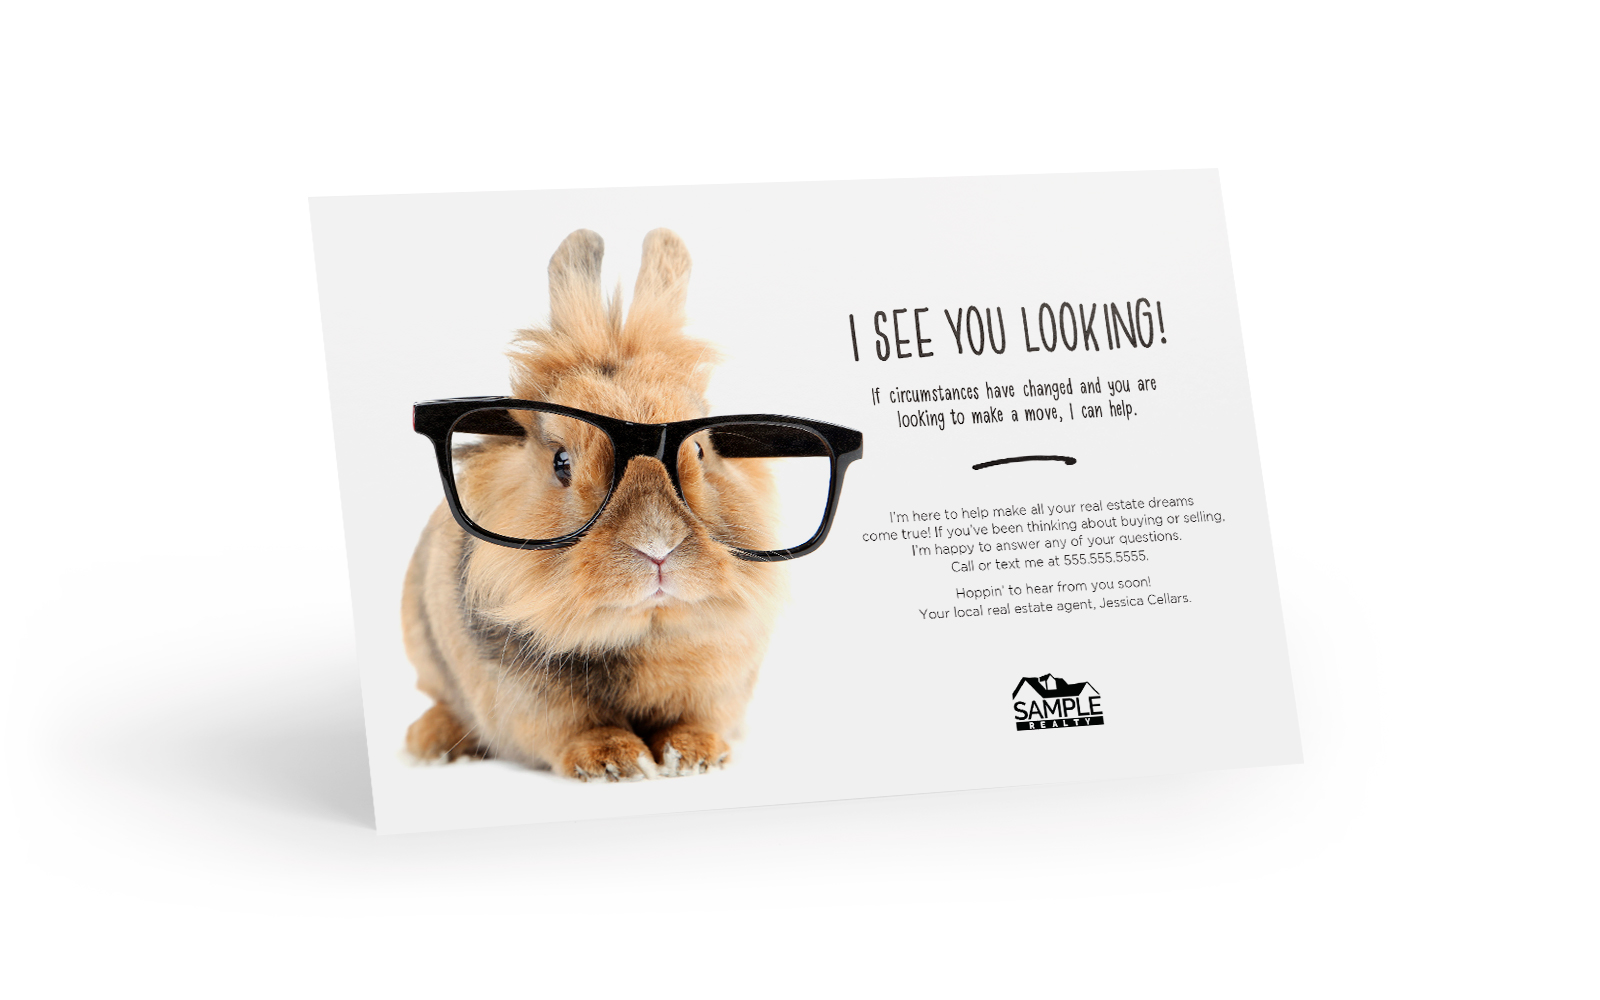 Corefact The Bright Side - The Farsighted Bunny